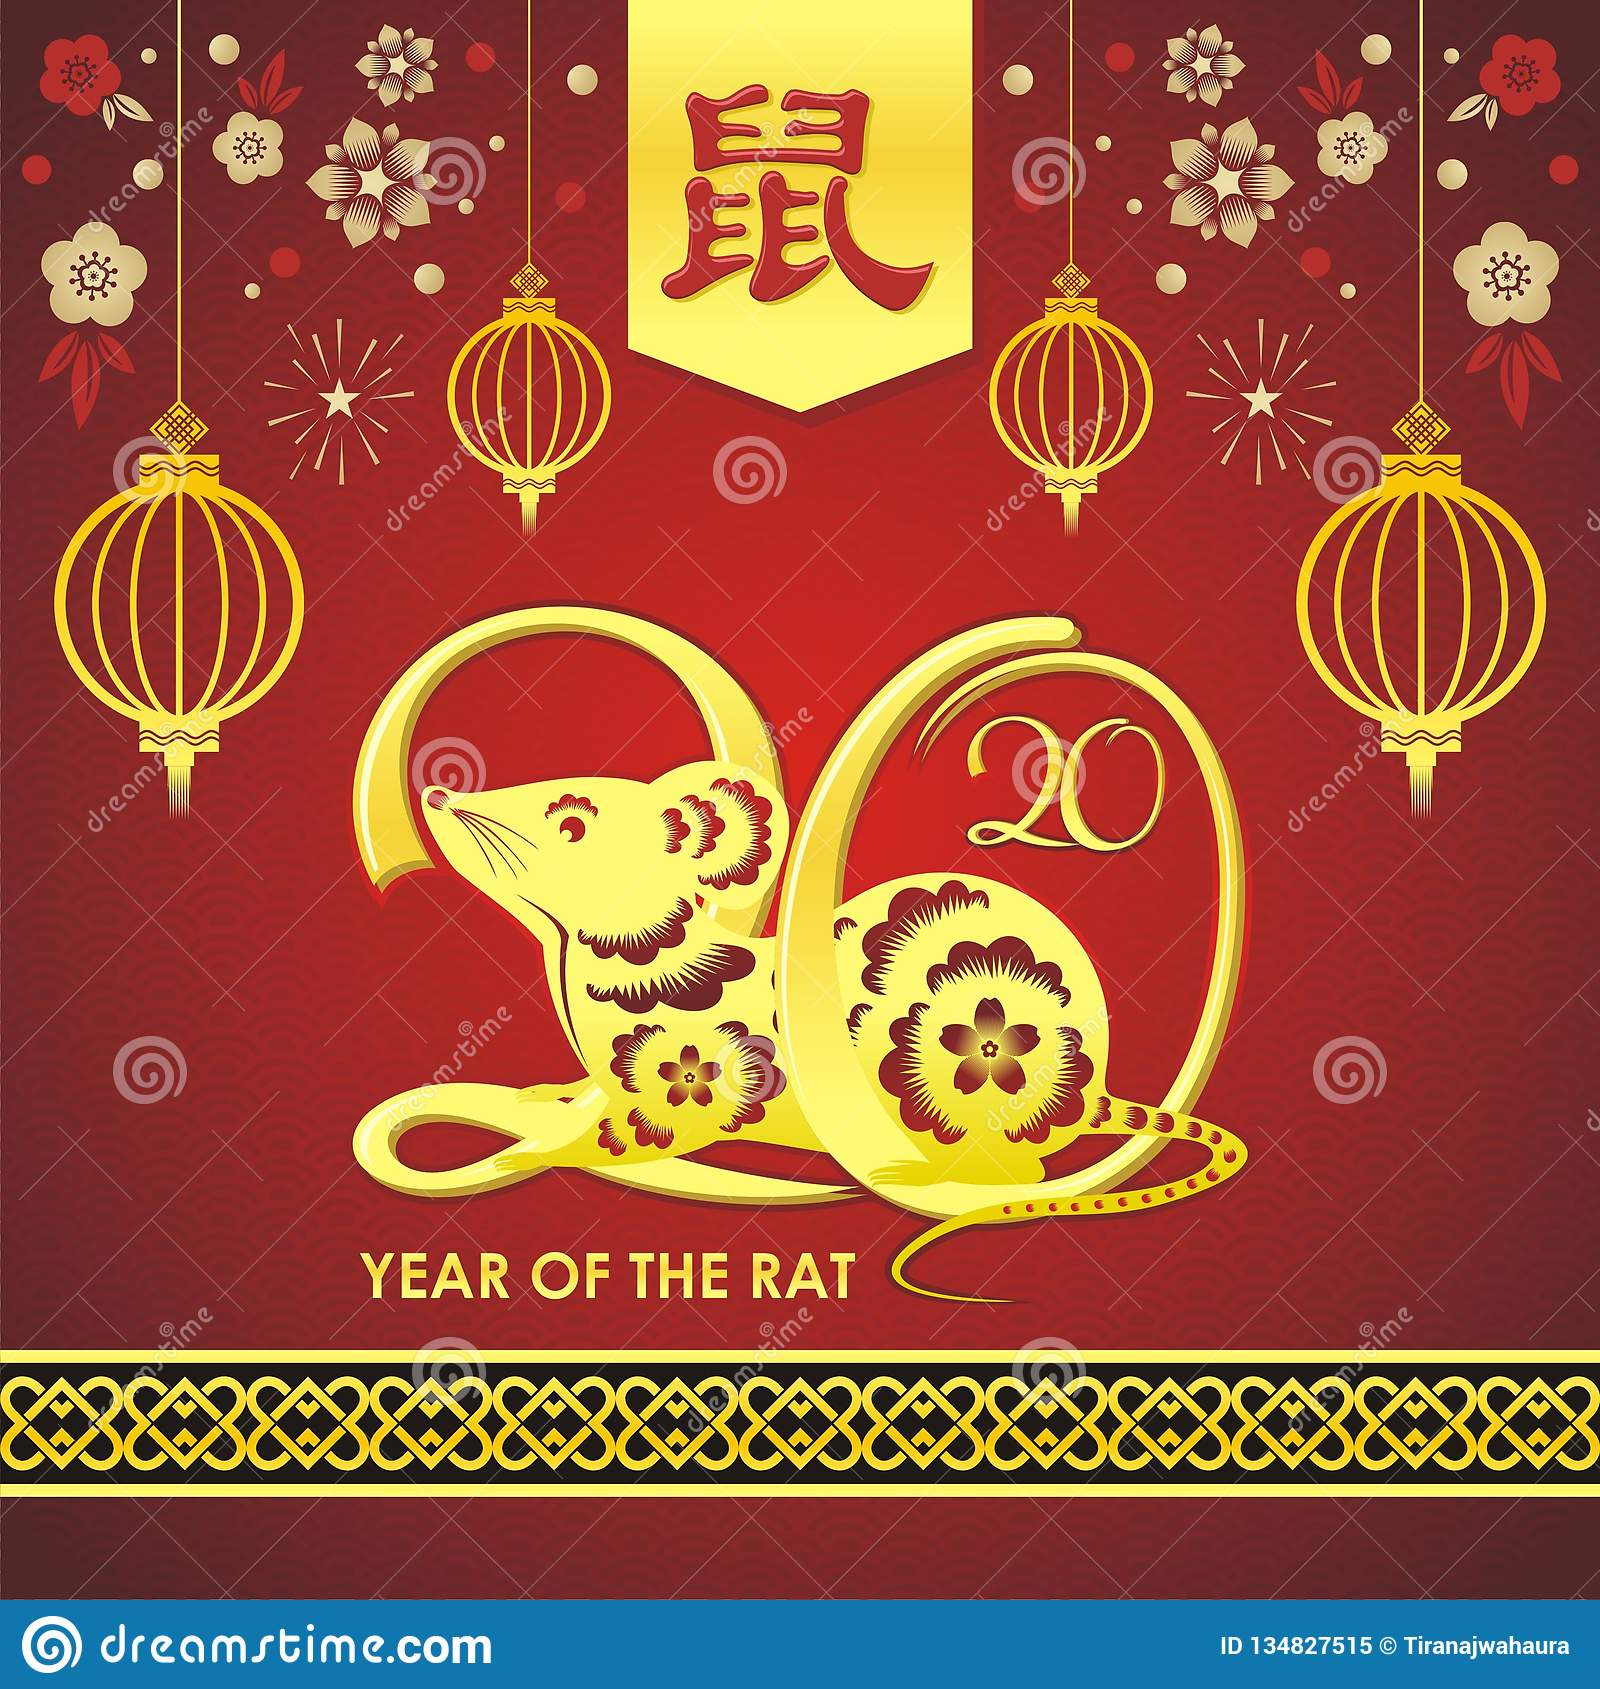 8557fbfbe Year of the Rat, chinese new year 2020 / 2032 / 2044 vector design, with  simple design, but has a deep meaning, about the tradition and zodiac of  rats. gold ...